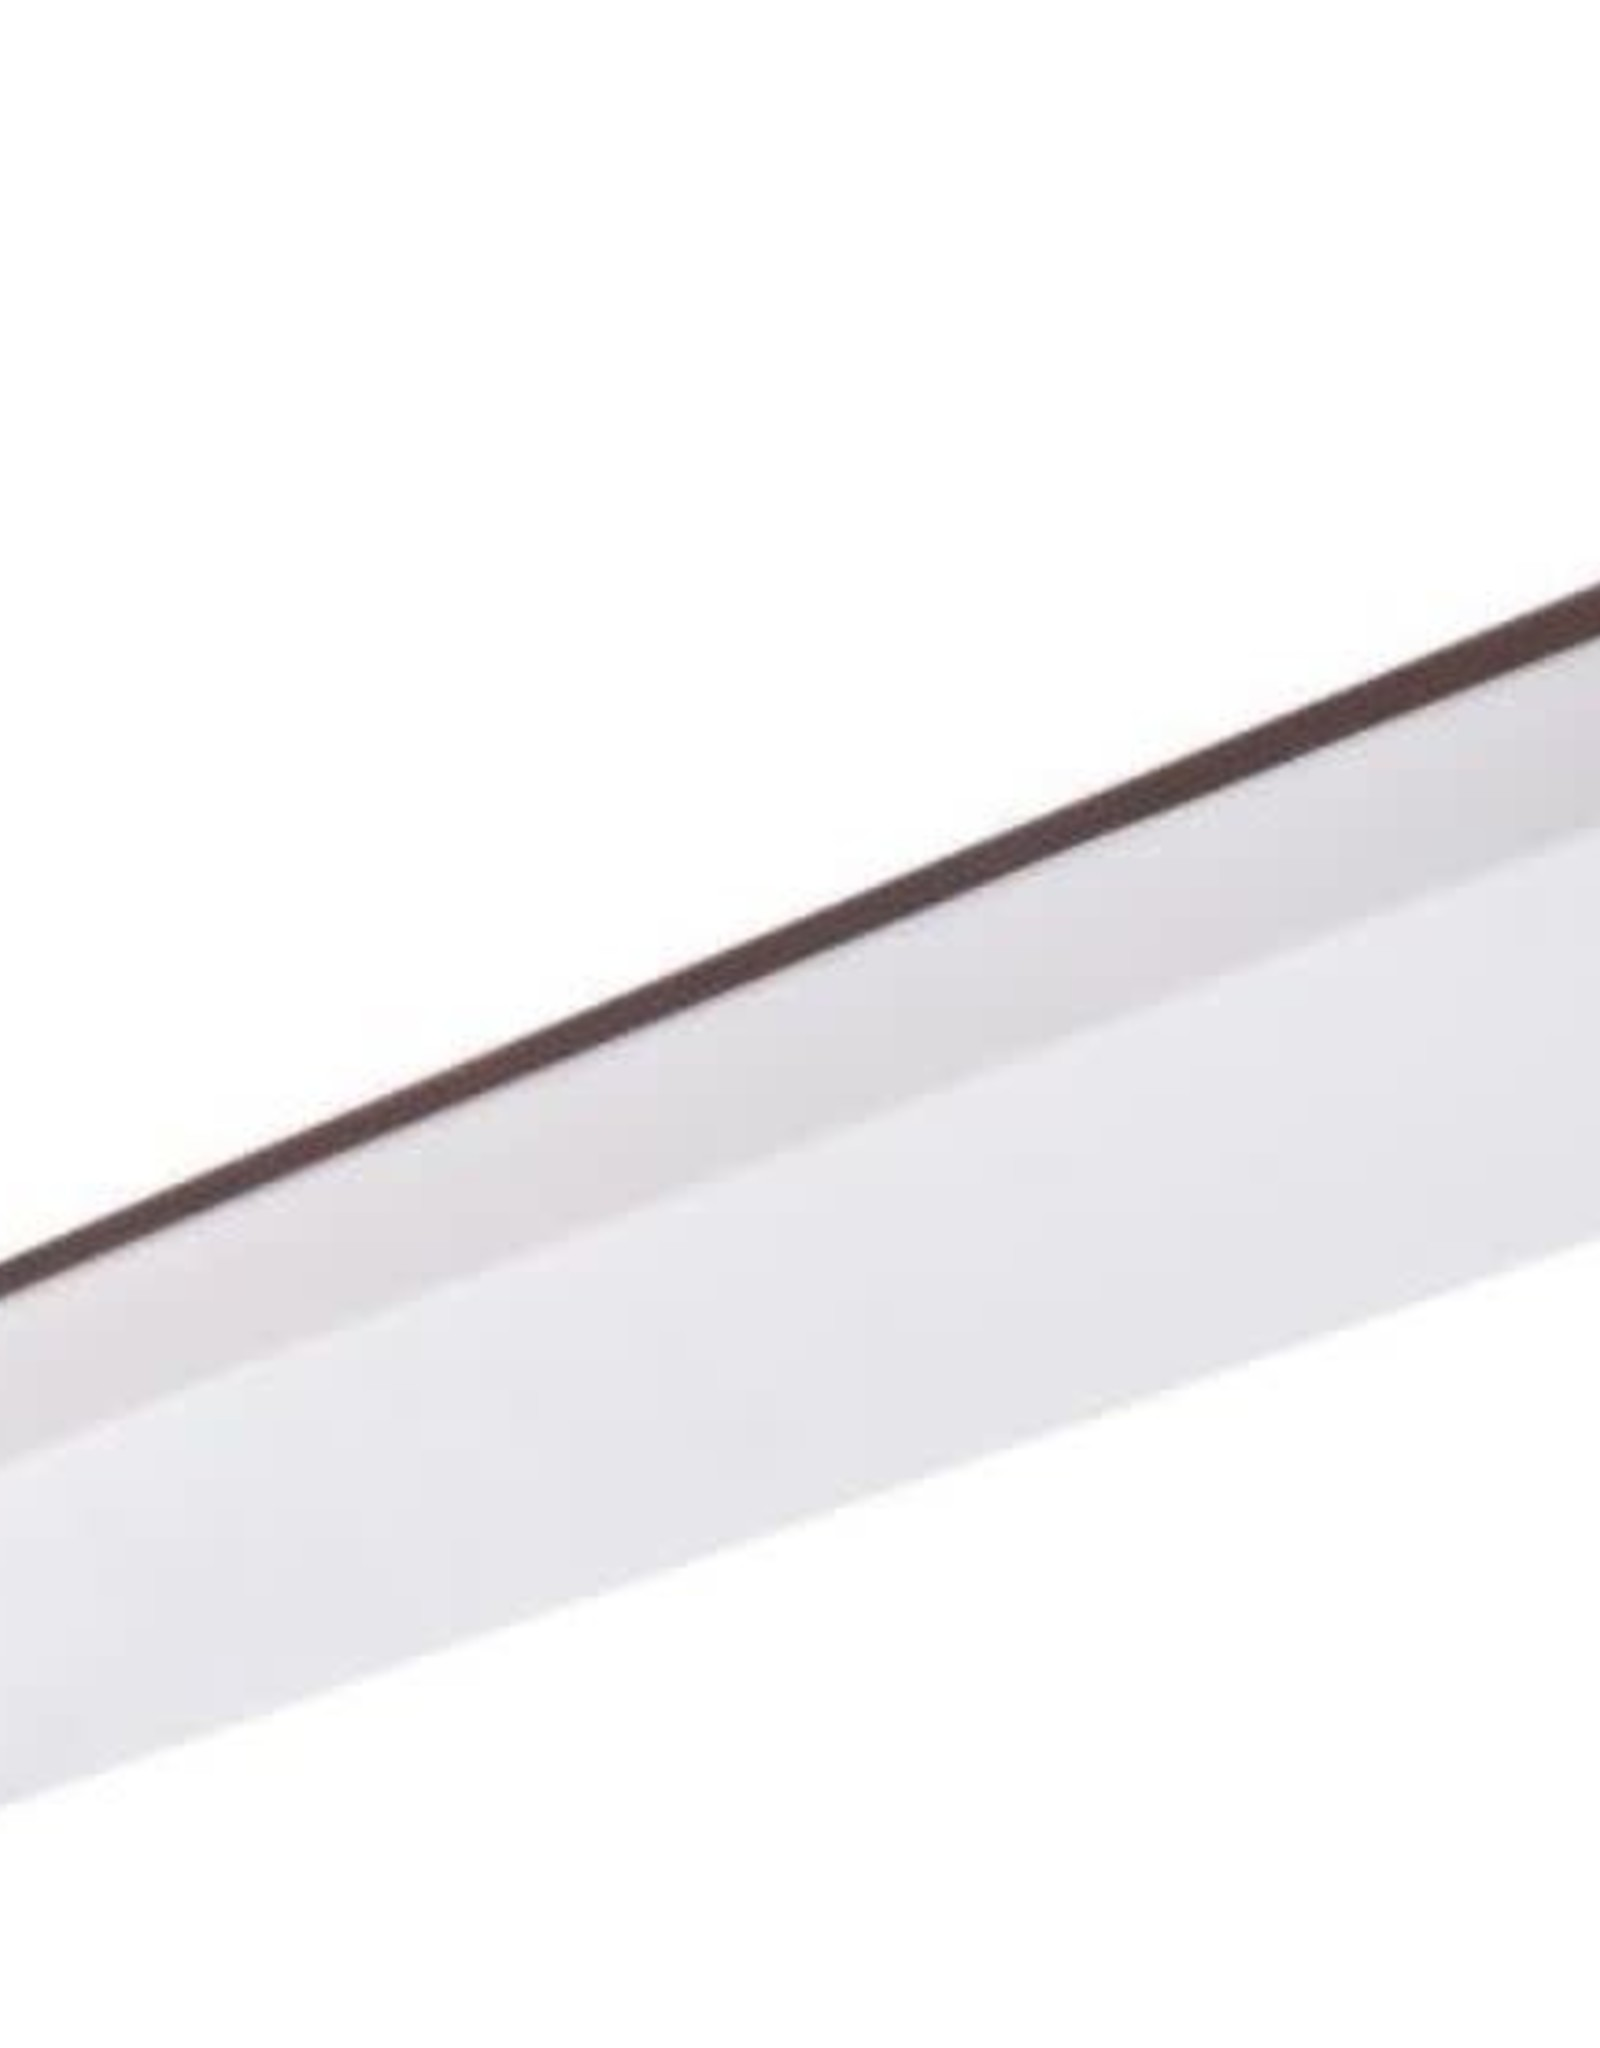 Lithonia Lighting 10648RE BZ Riser 2-Light Black Bronze Fluorescent Ceiling Light